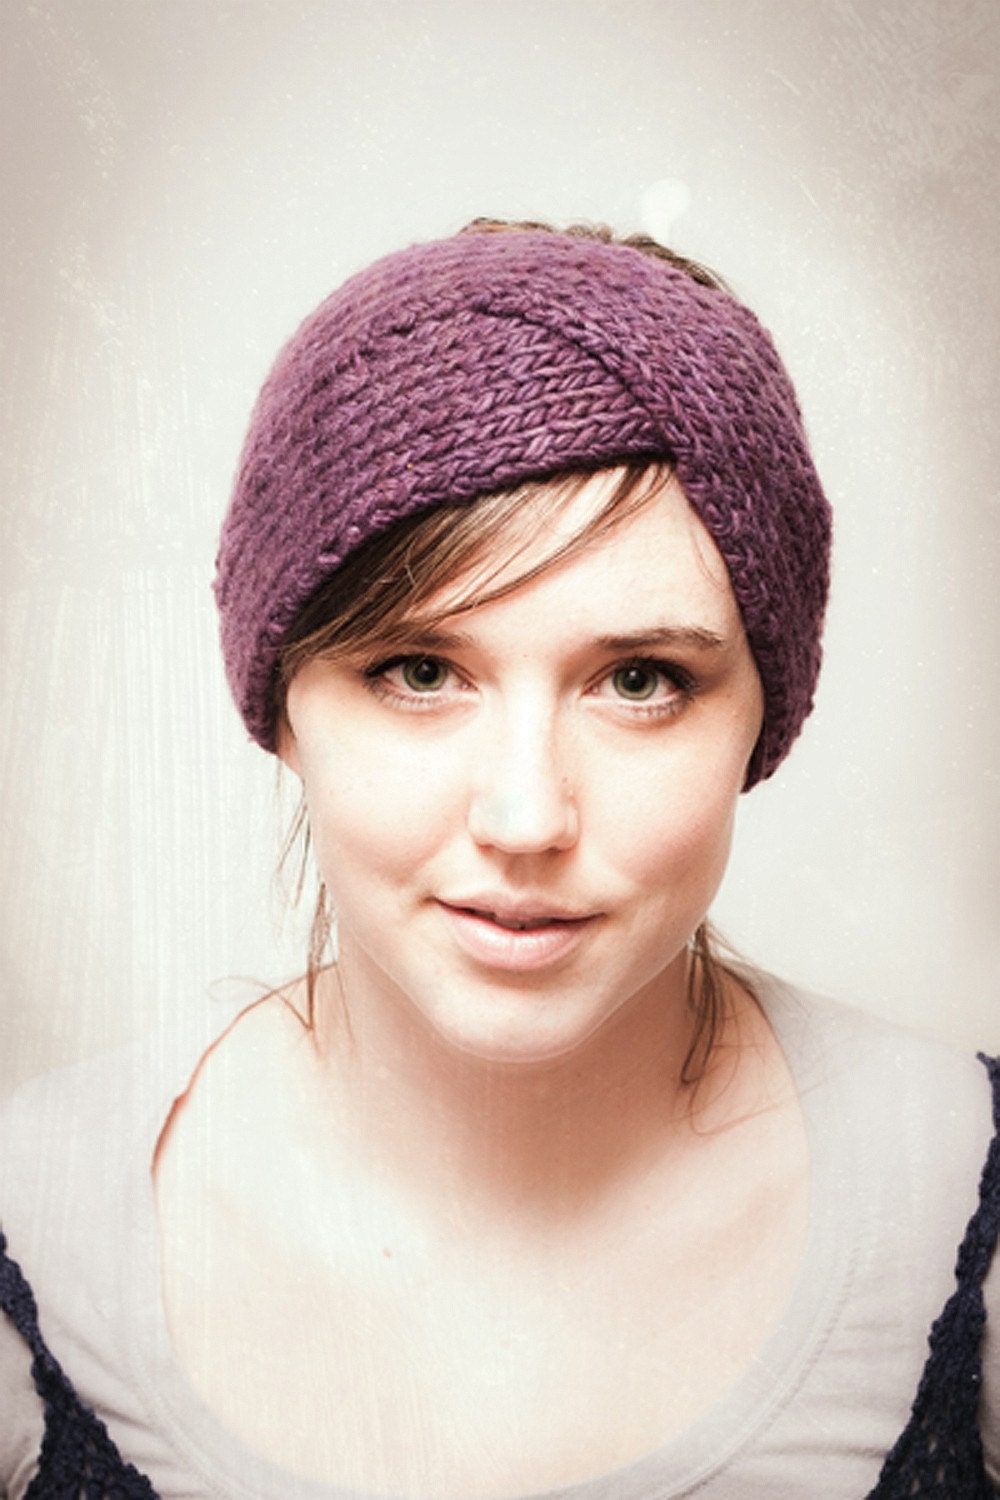 Twisted Headband Knit Pattern : KNITTING PATTERN Parisian Twist Headband Ear Warmer PDF